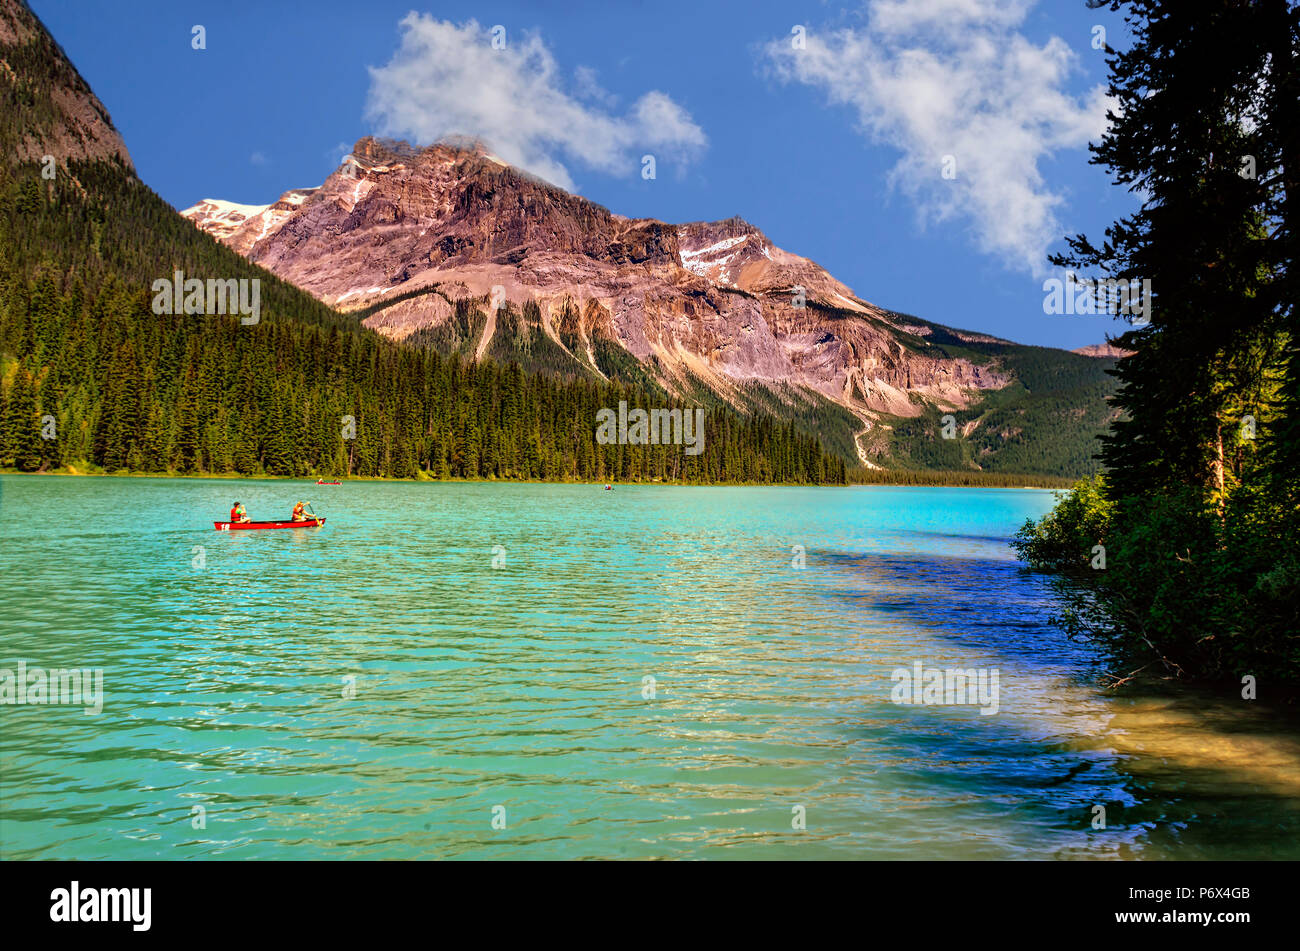 On the emerald green lake, surrounded by coniferous forests and rocky mountains on a bright, sunny day with a blue sky and white clouds, canoeists swi - Stock Image